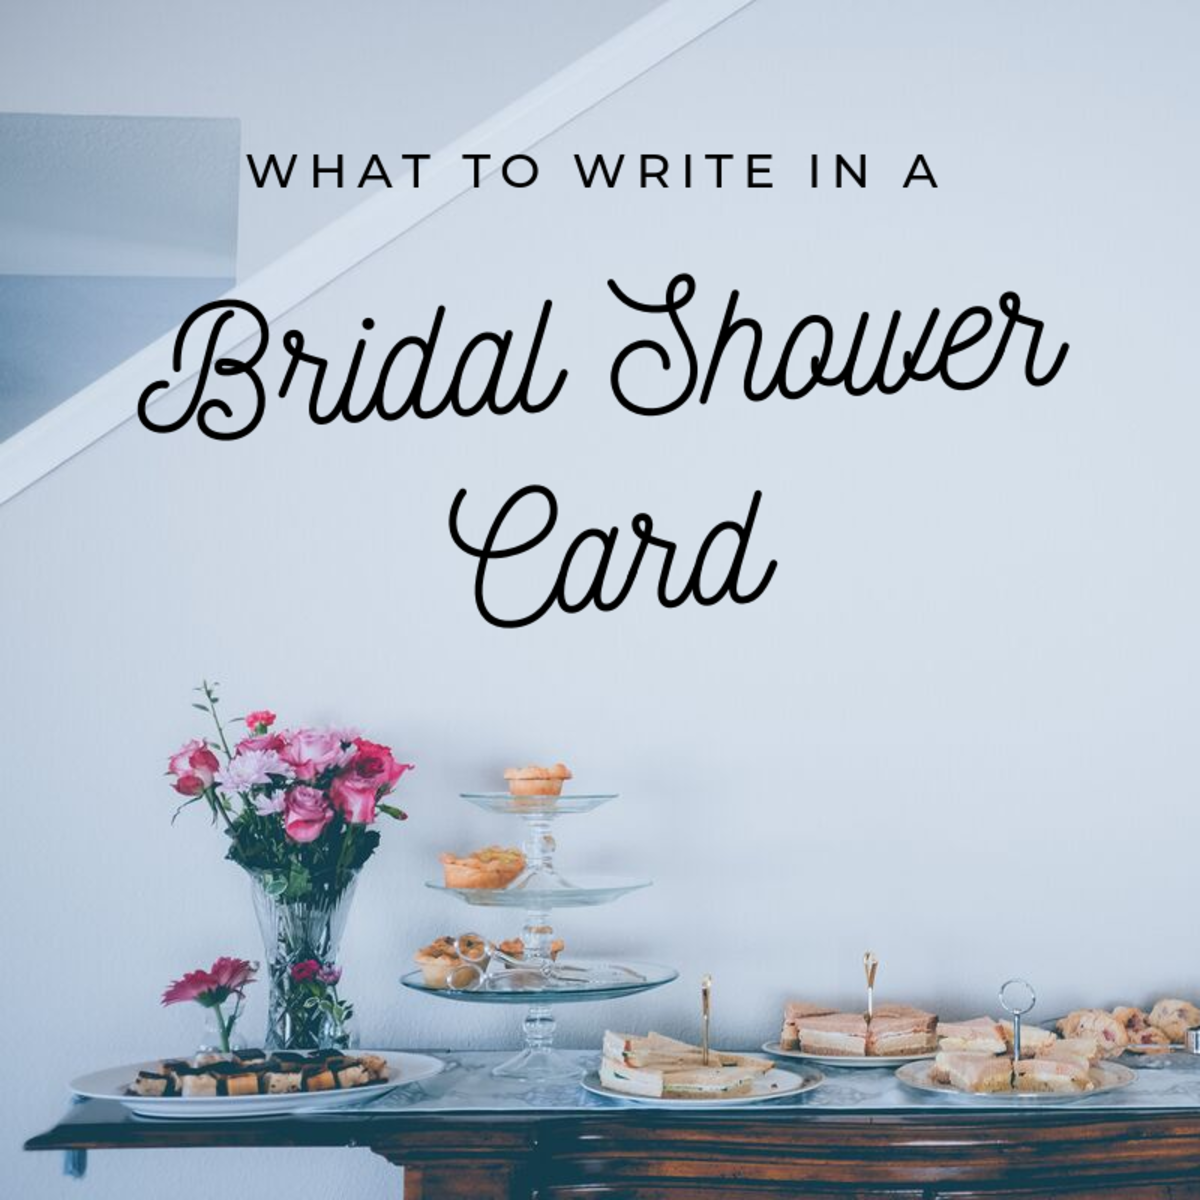 Example Bridal Shower Card Messages